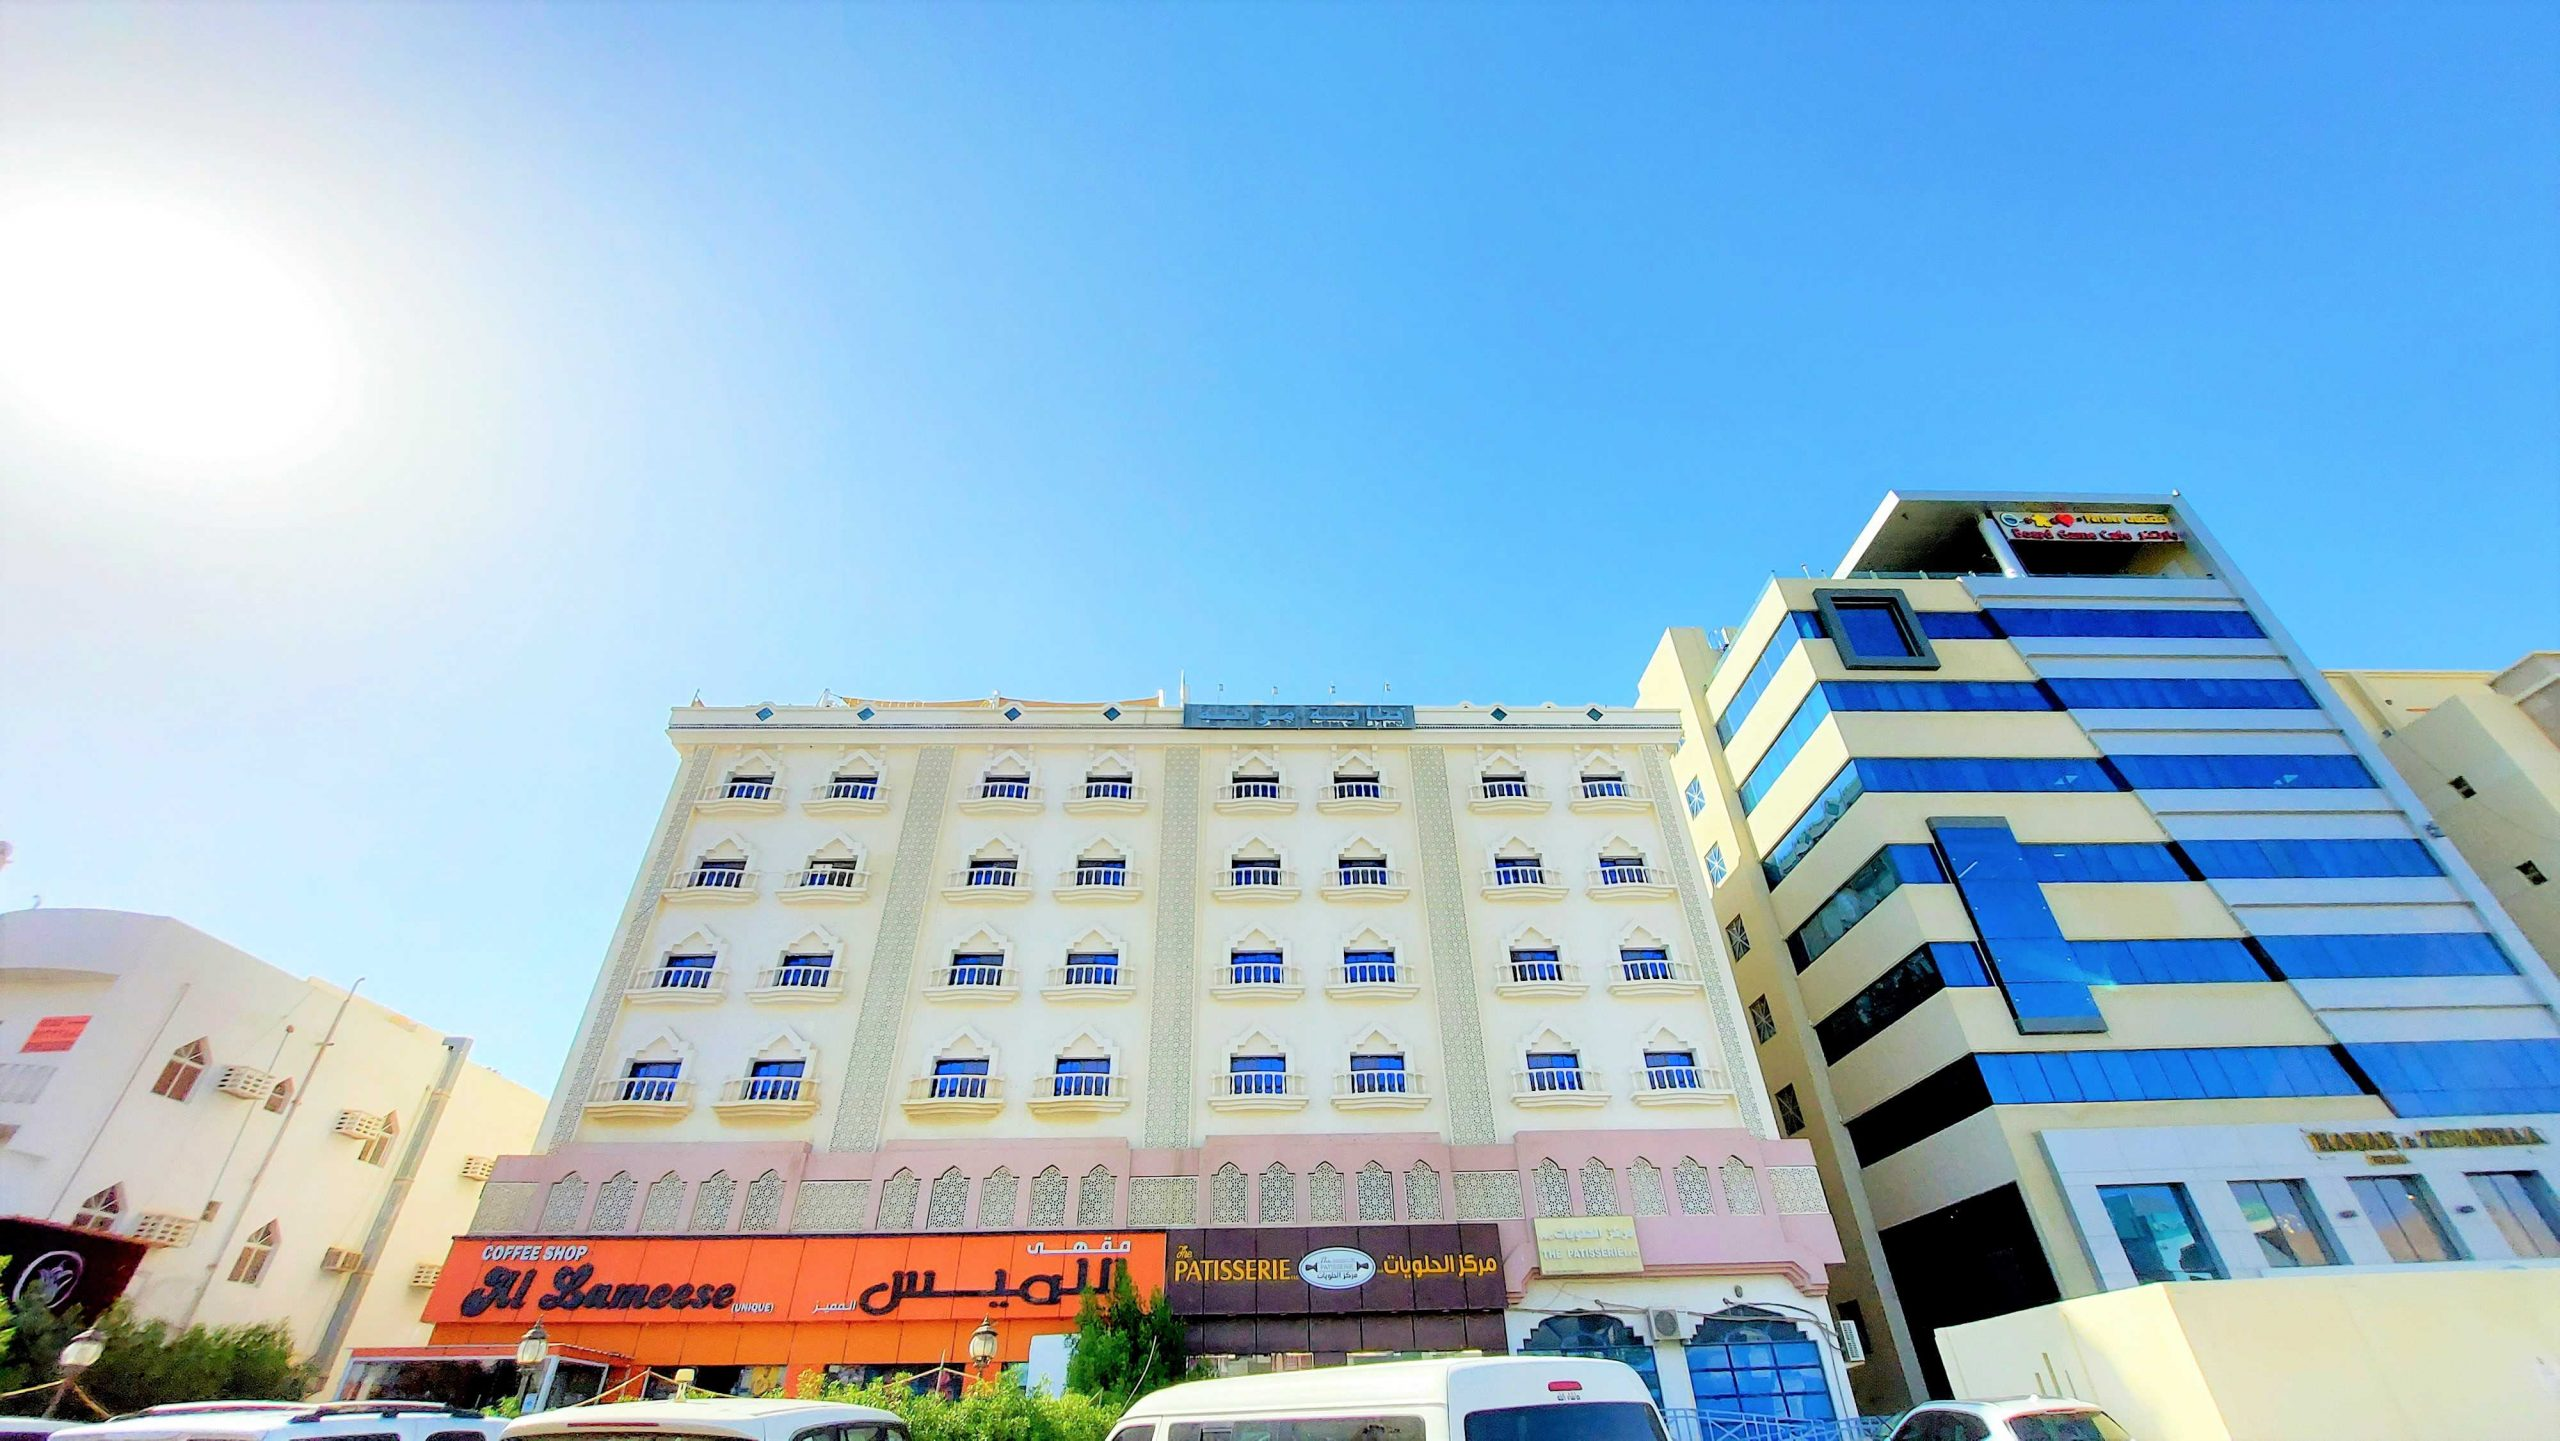 """You are currently viewing Al Moznah <br><span class=""""headlin"""">Al Khuwair, Muscat, Oman</span><br><span class=""""headlin2"""">Category: 1/2/3 Br Apartments – For Rent</span>"""